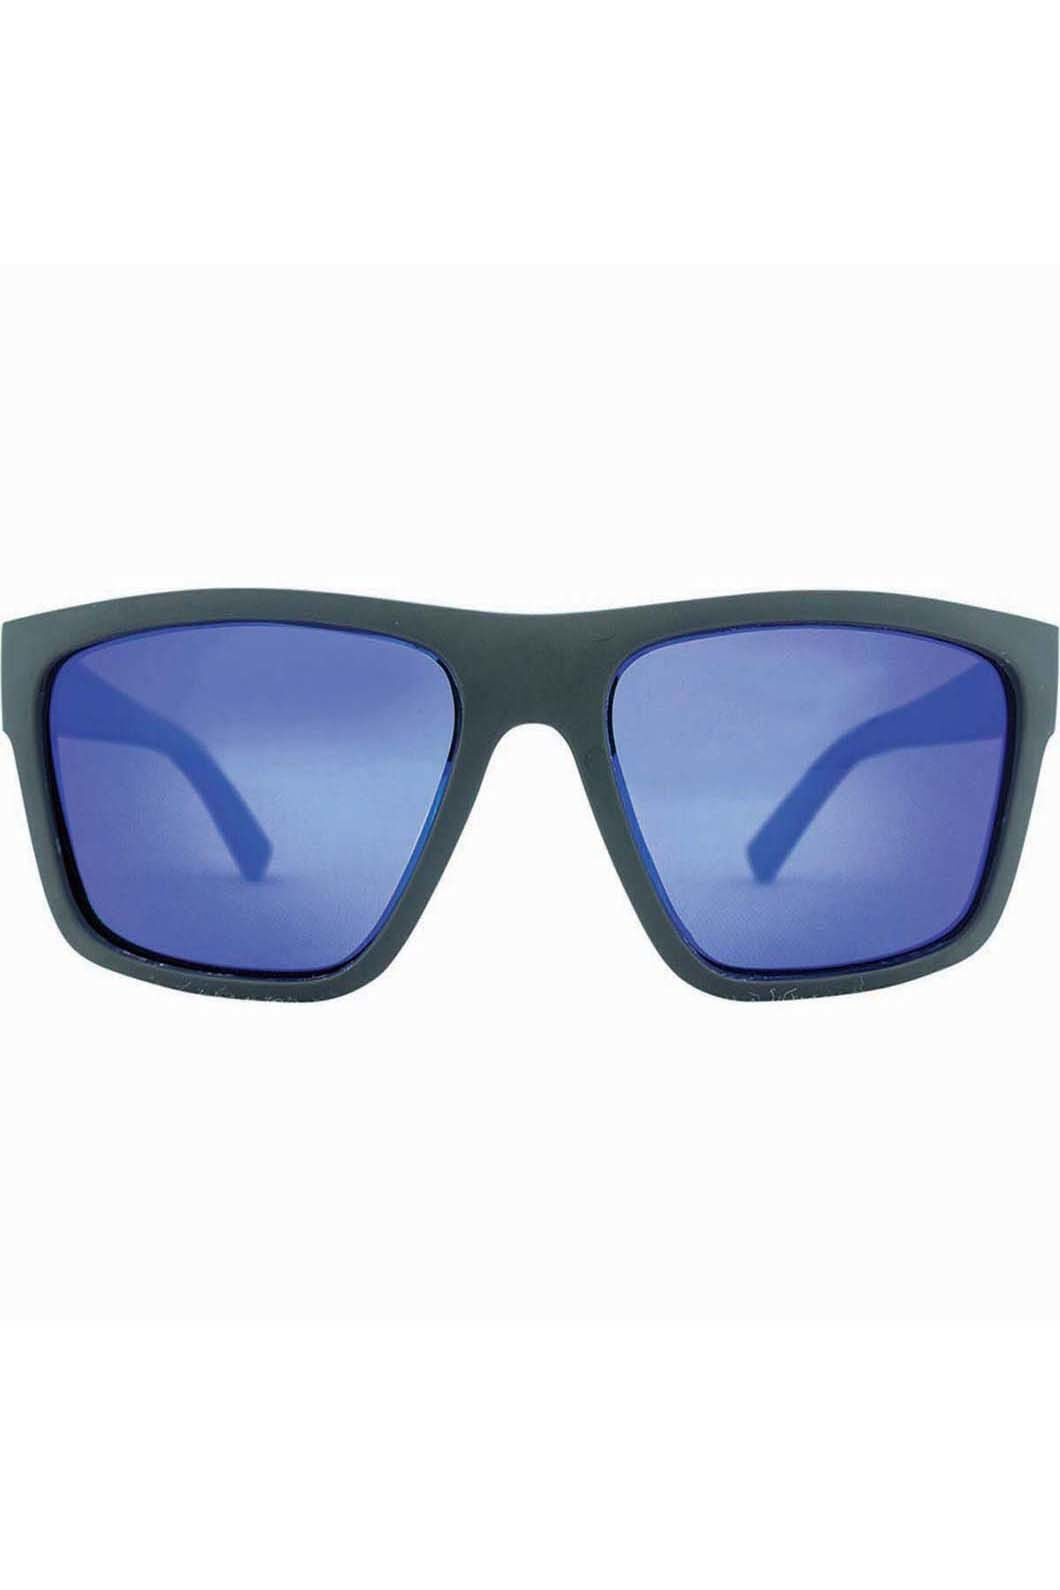 Venture Eyewear Men's The Edge Sunglasses, Black/Blue, hi-res